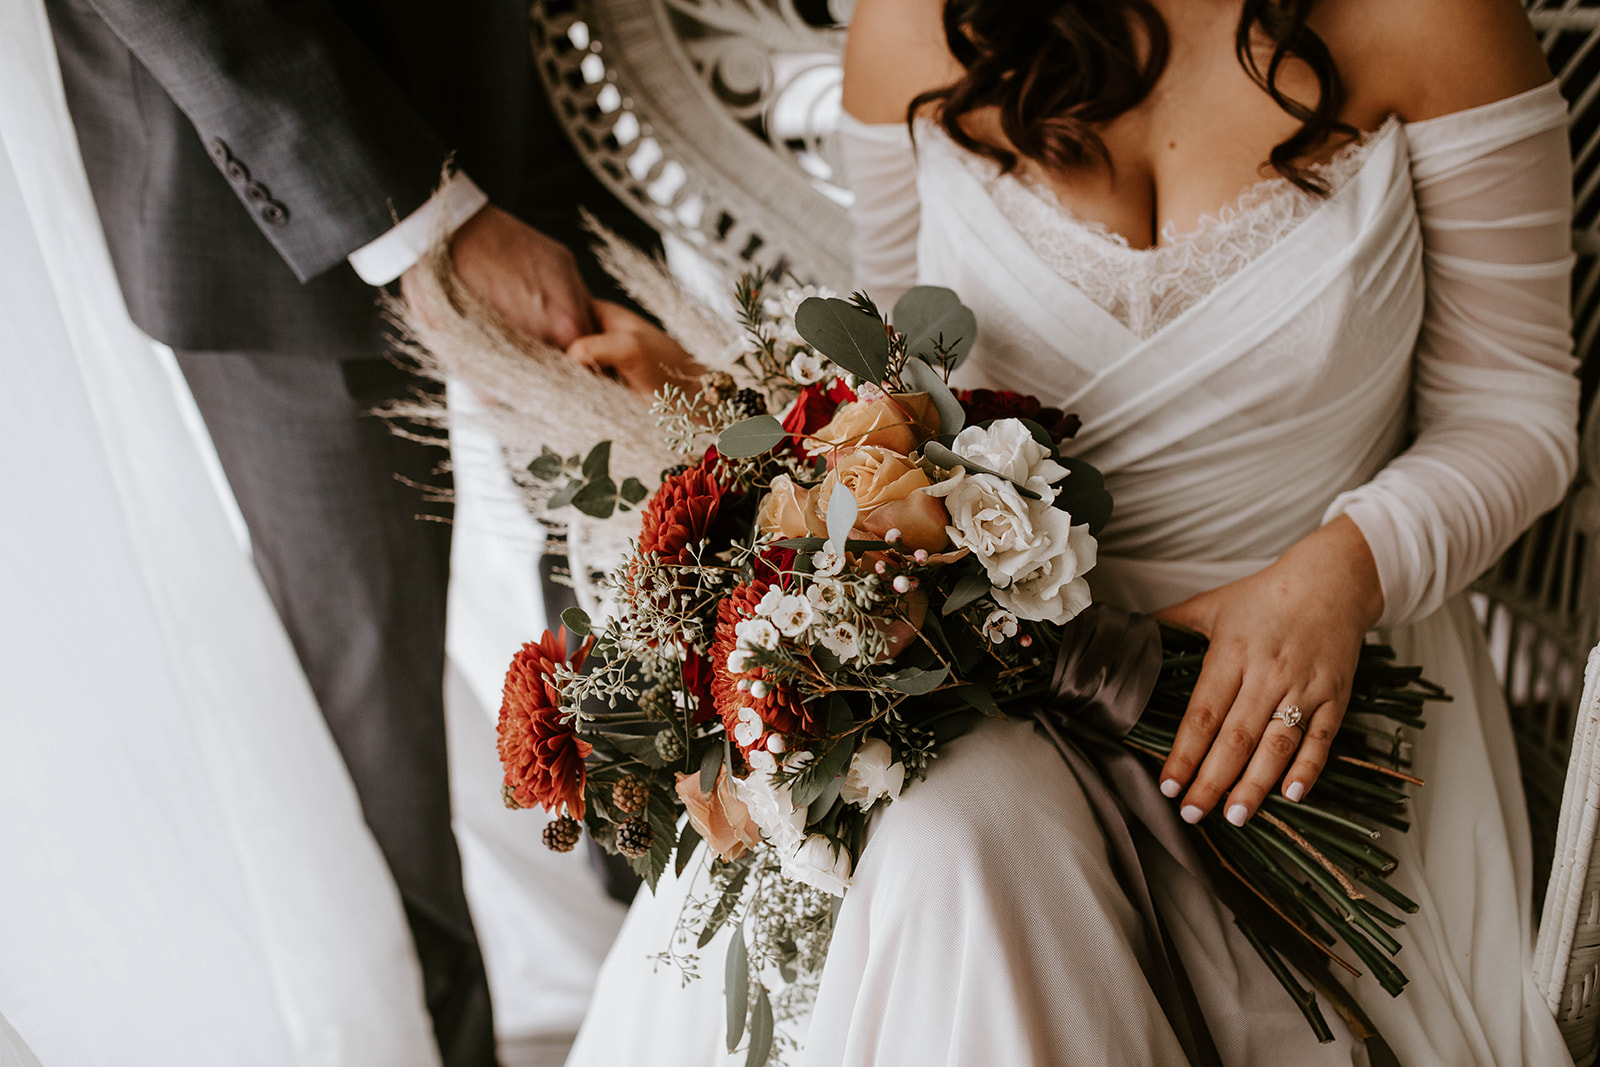 Boho wedding bouquet: Surprise Vow Renewal by Tara Winstead Photography featured on Nashville Bride Guide